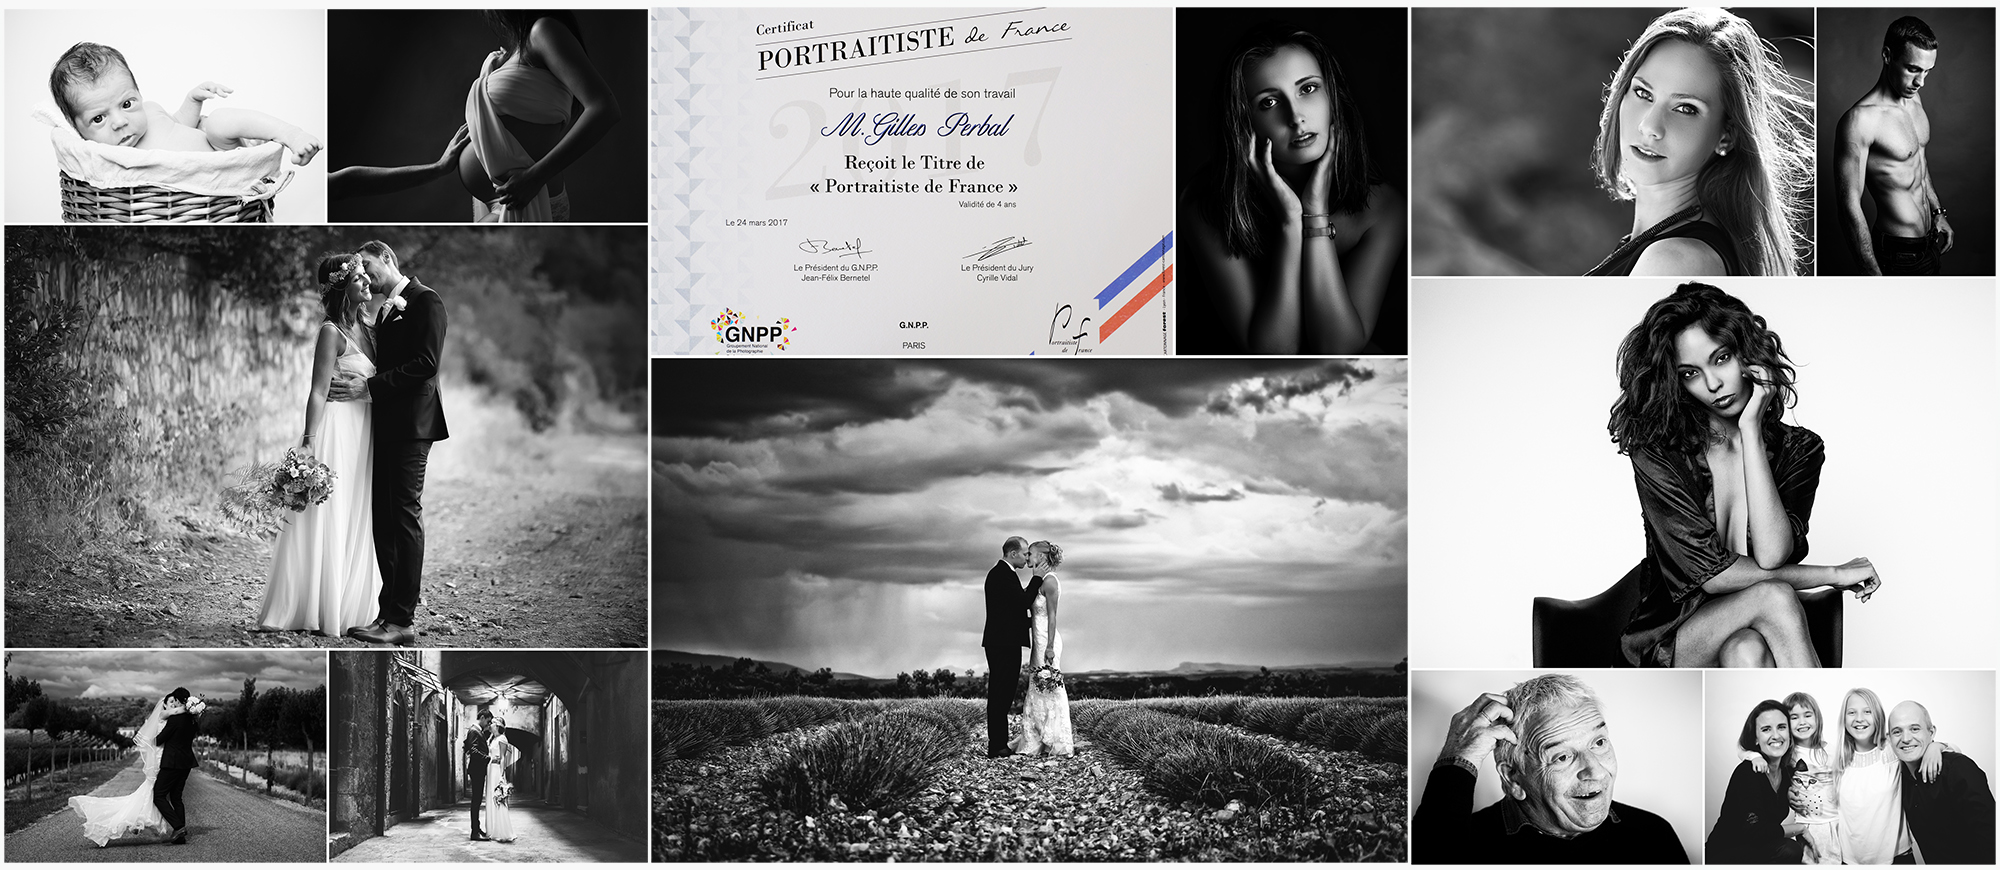 Gilles Perbal portraitiste de france 2017